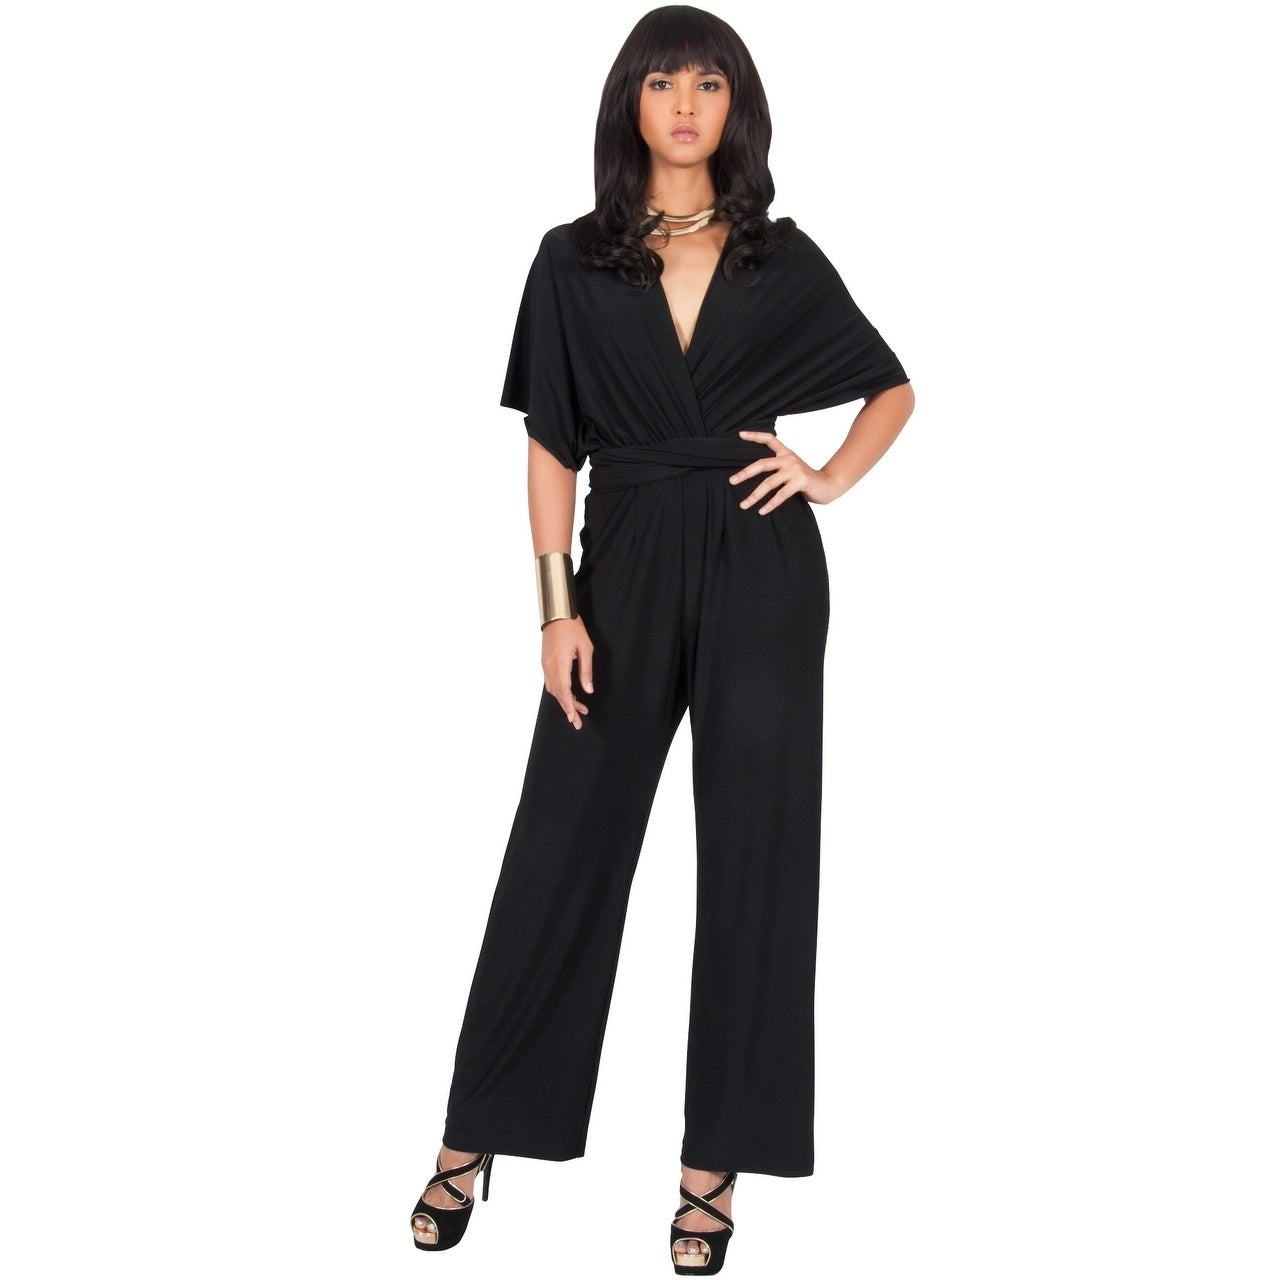 c049db9995a KOH KOH Womens Convertible Wrap Cocktail Party Jumpsuit Romper Pants ...